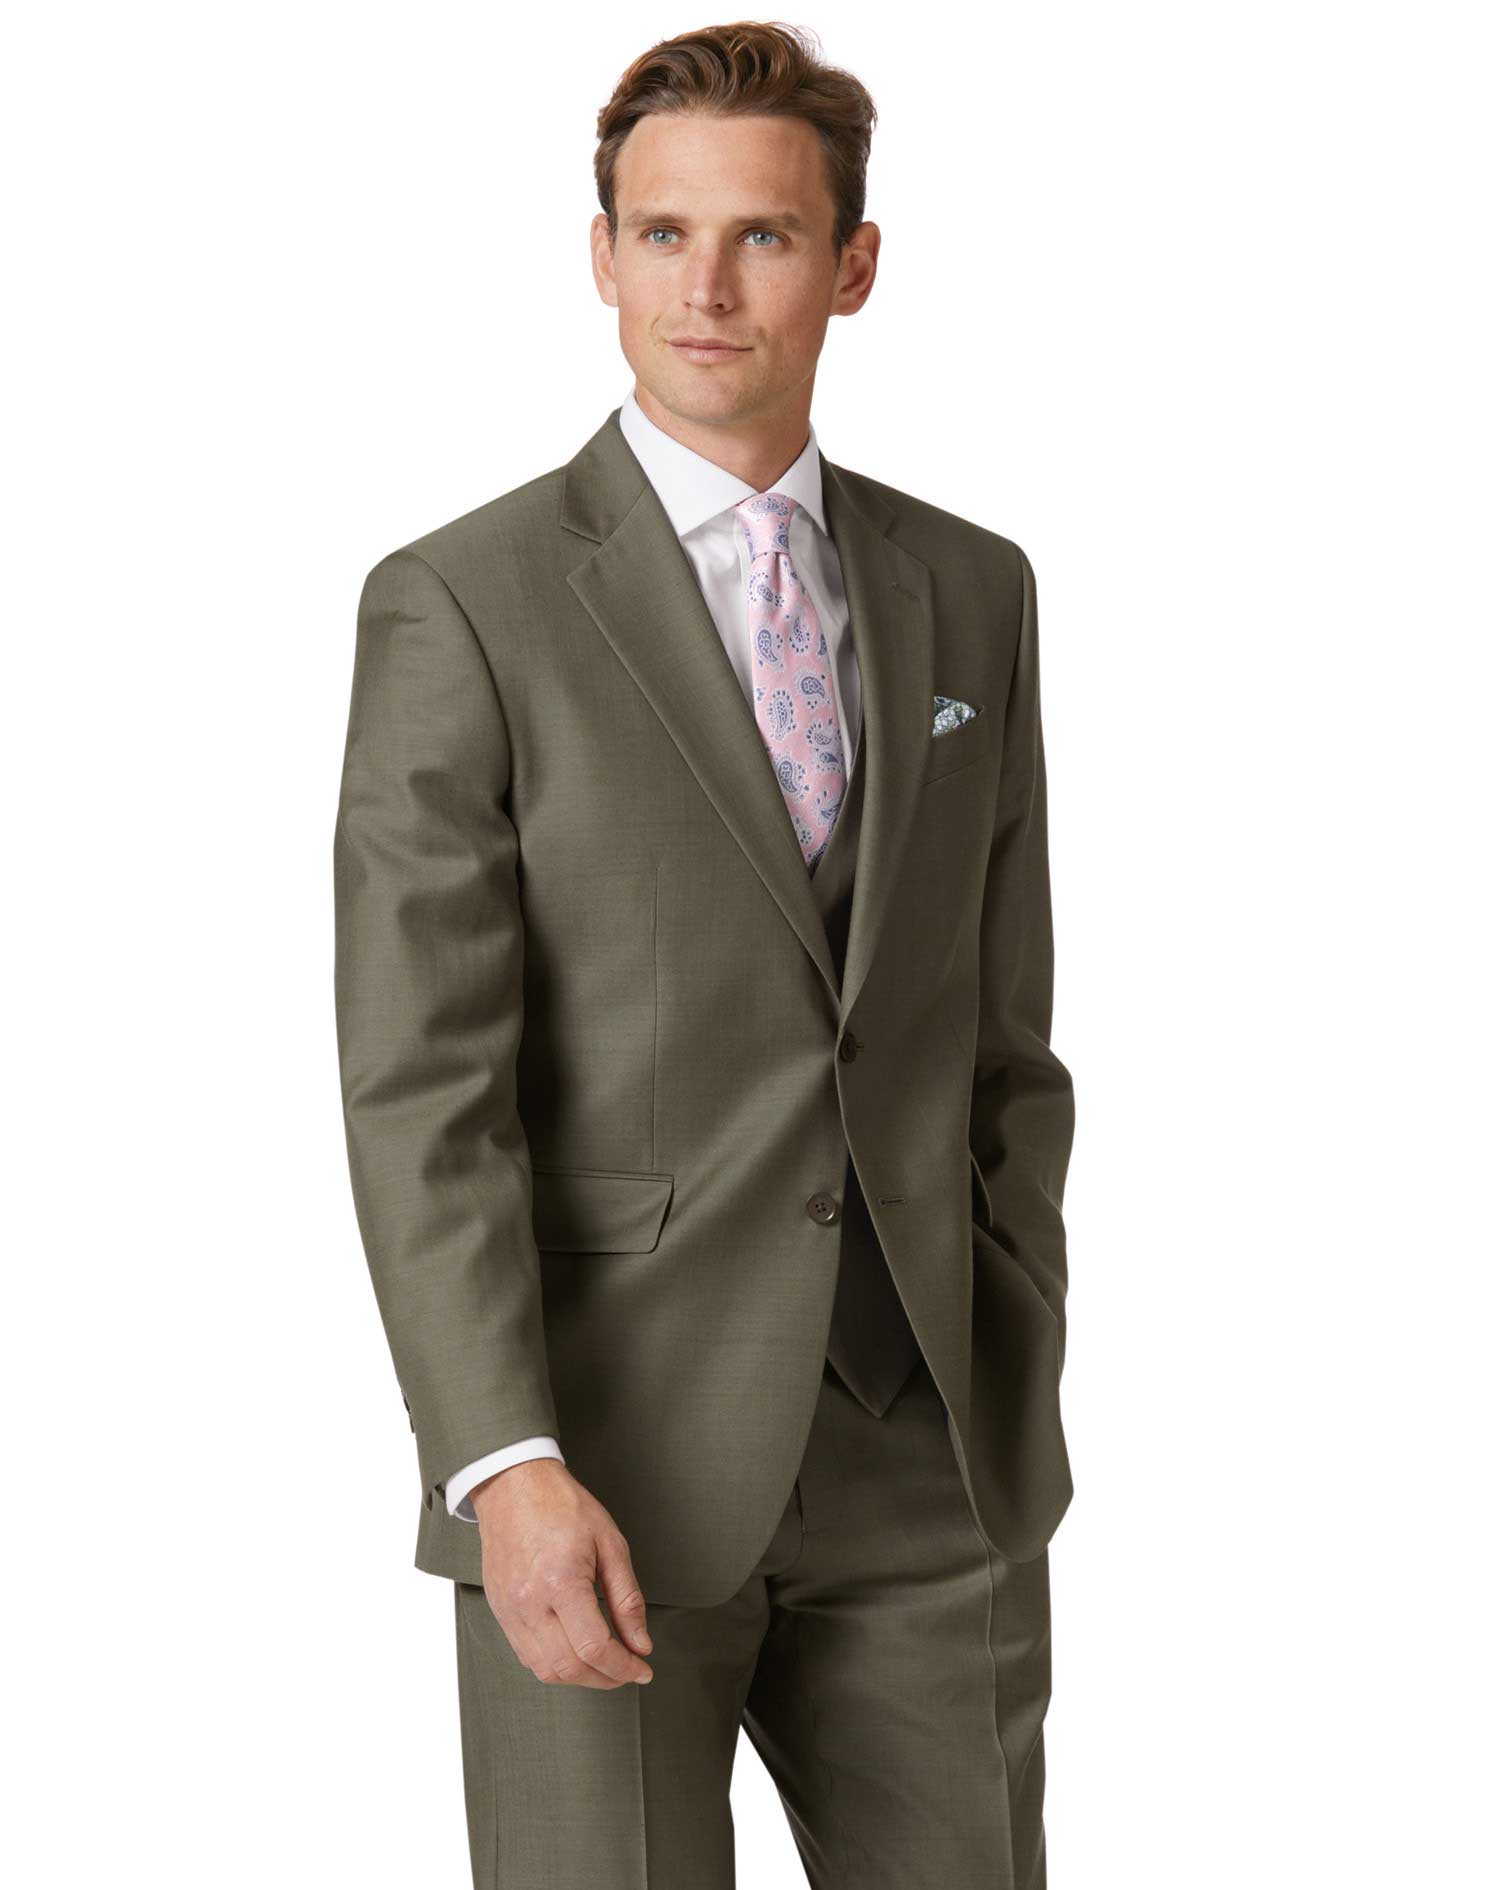 Olive Classic Fit Twill Business Suit Wool Jacket Size 48 Regular by Charles Tyrwhitt